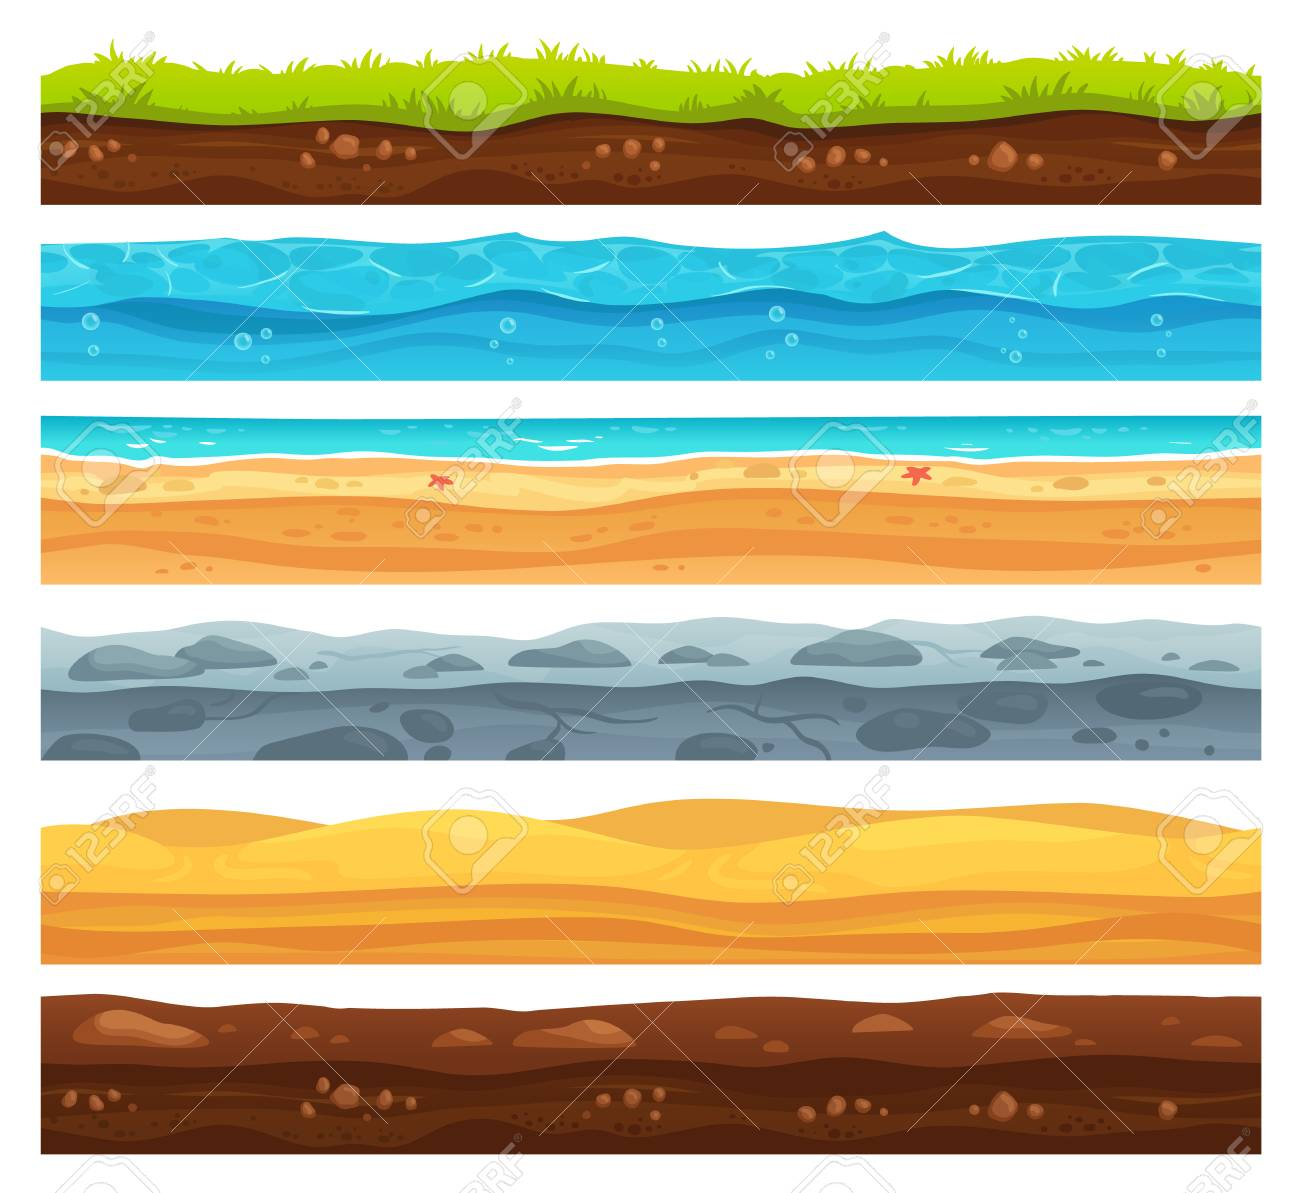 Seamless ground surface. Green grass land landscape, sandy desert and beach with sea water. Grounds layers texture for game level development, geology vector cartoon isolated set - 109675134